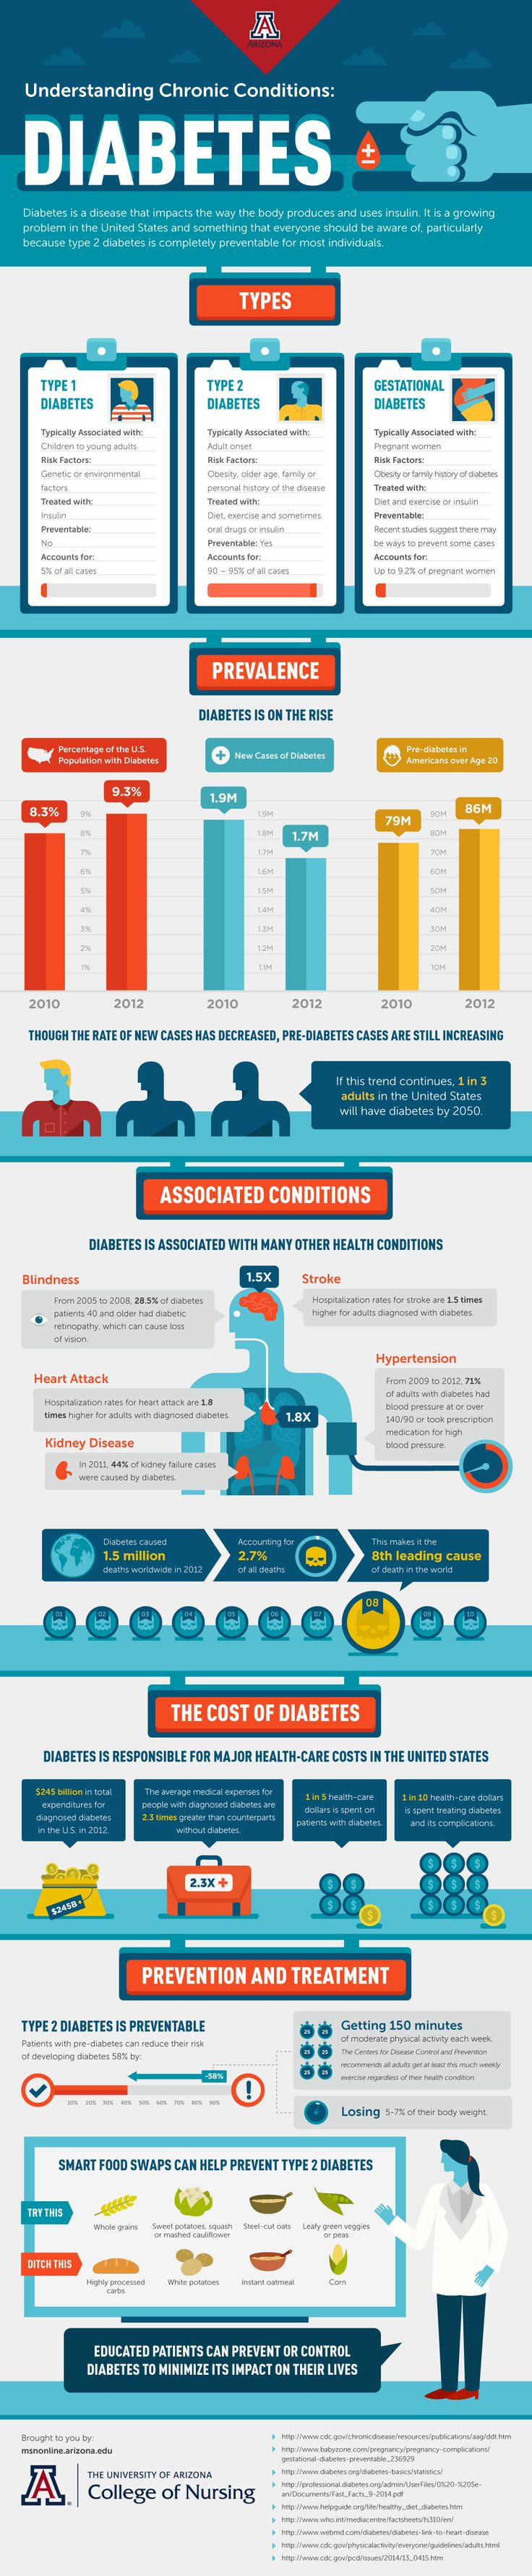 Understanding Chronic Conditions: Diabetes | Online RN to MSN | University of Arizona